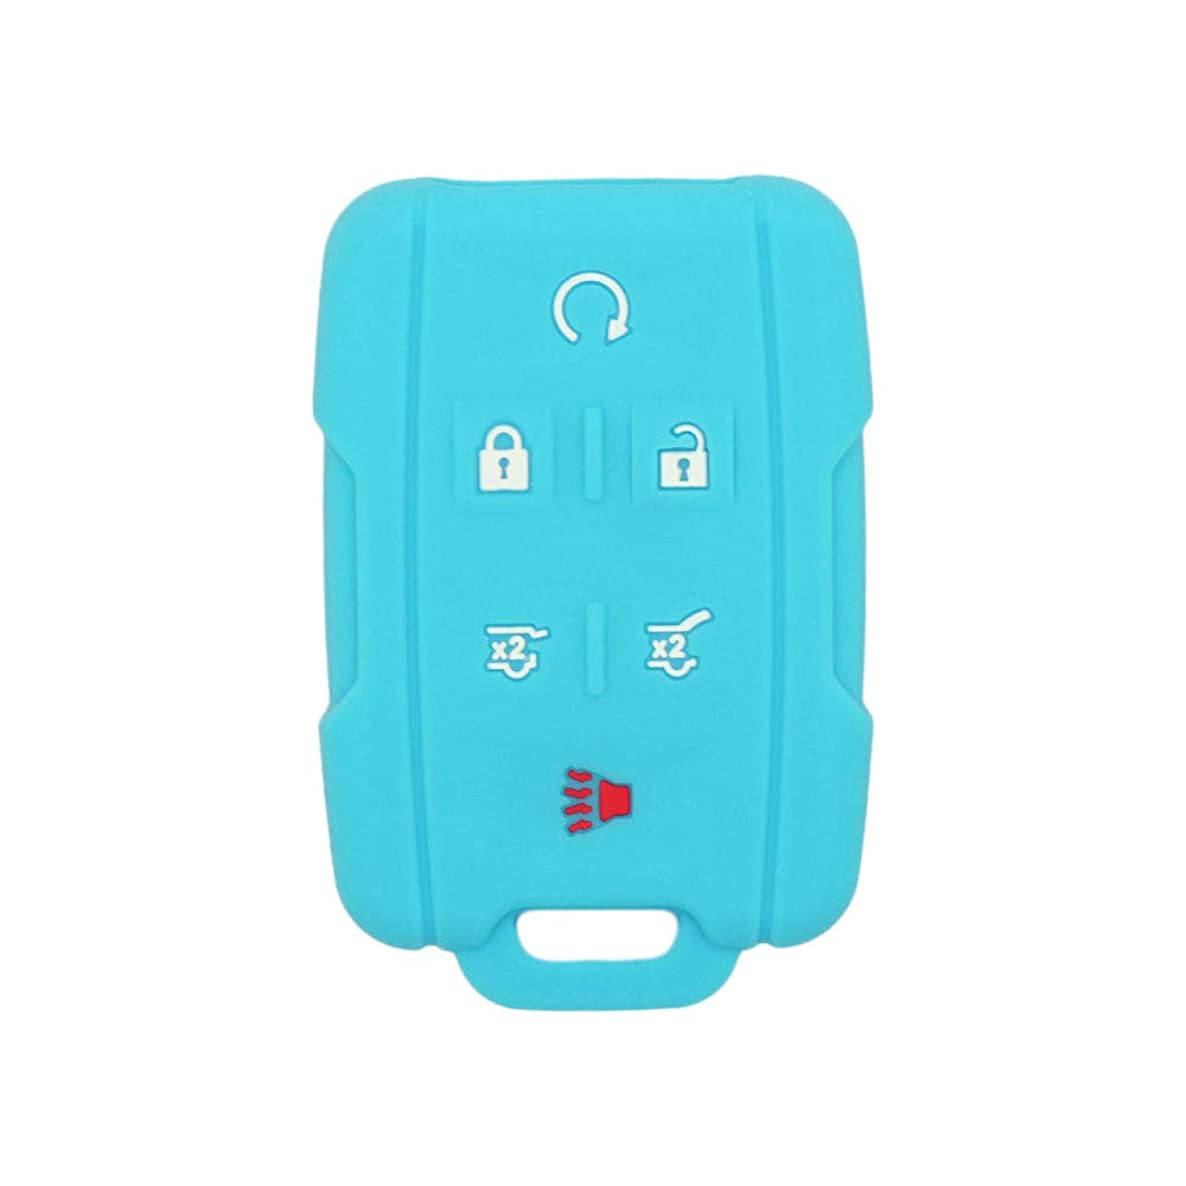 SEGADEN Silicone Cover Protector Case Skin Jacket fit for CHEVROLET CADILLAC GMC 6 Button Remote Key Fob CV2600 Light Blue